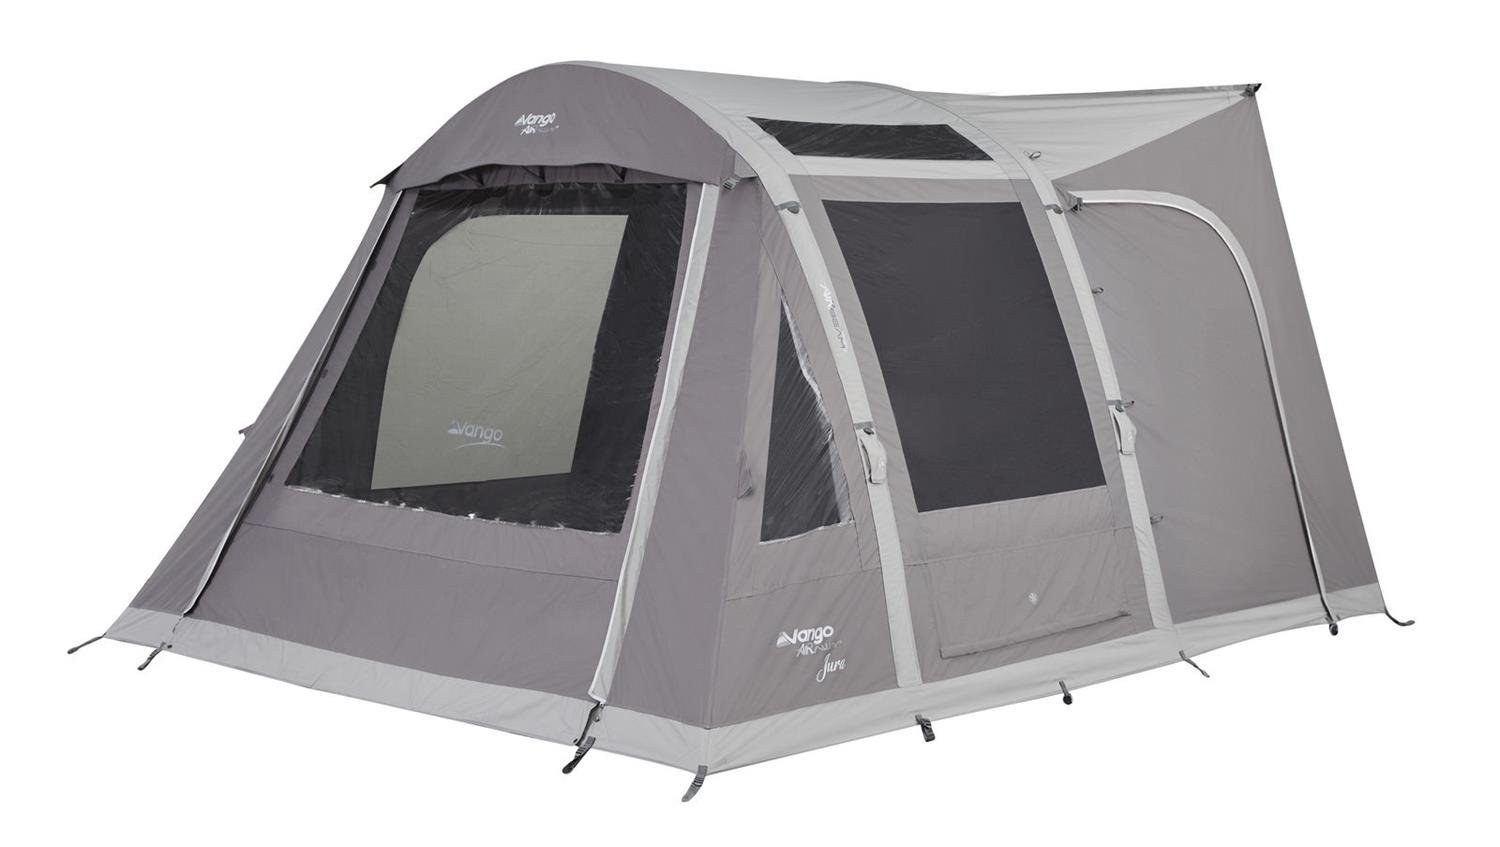 The Vango Jura Air Awning.